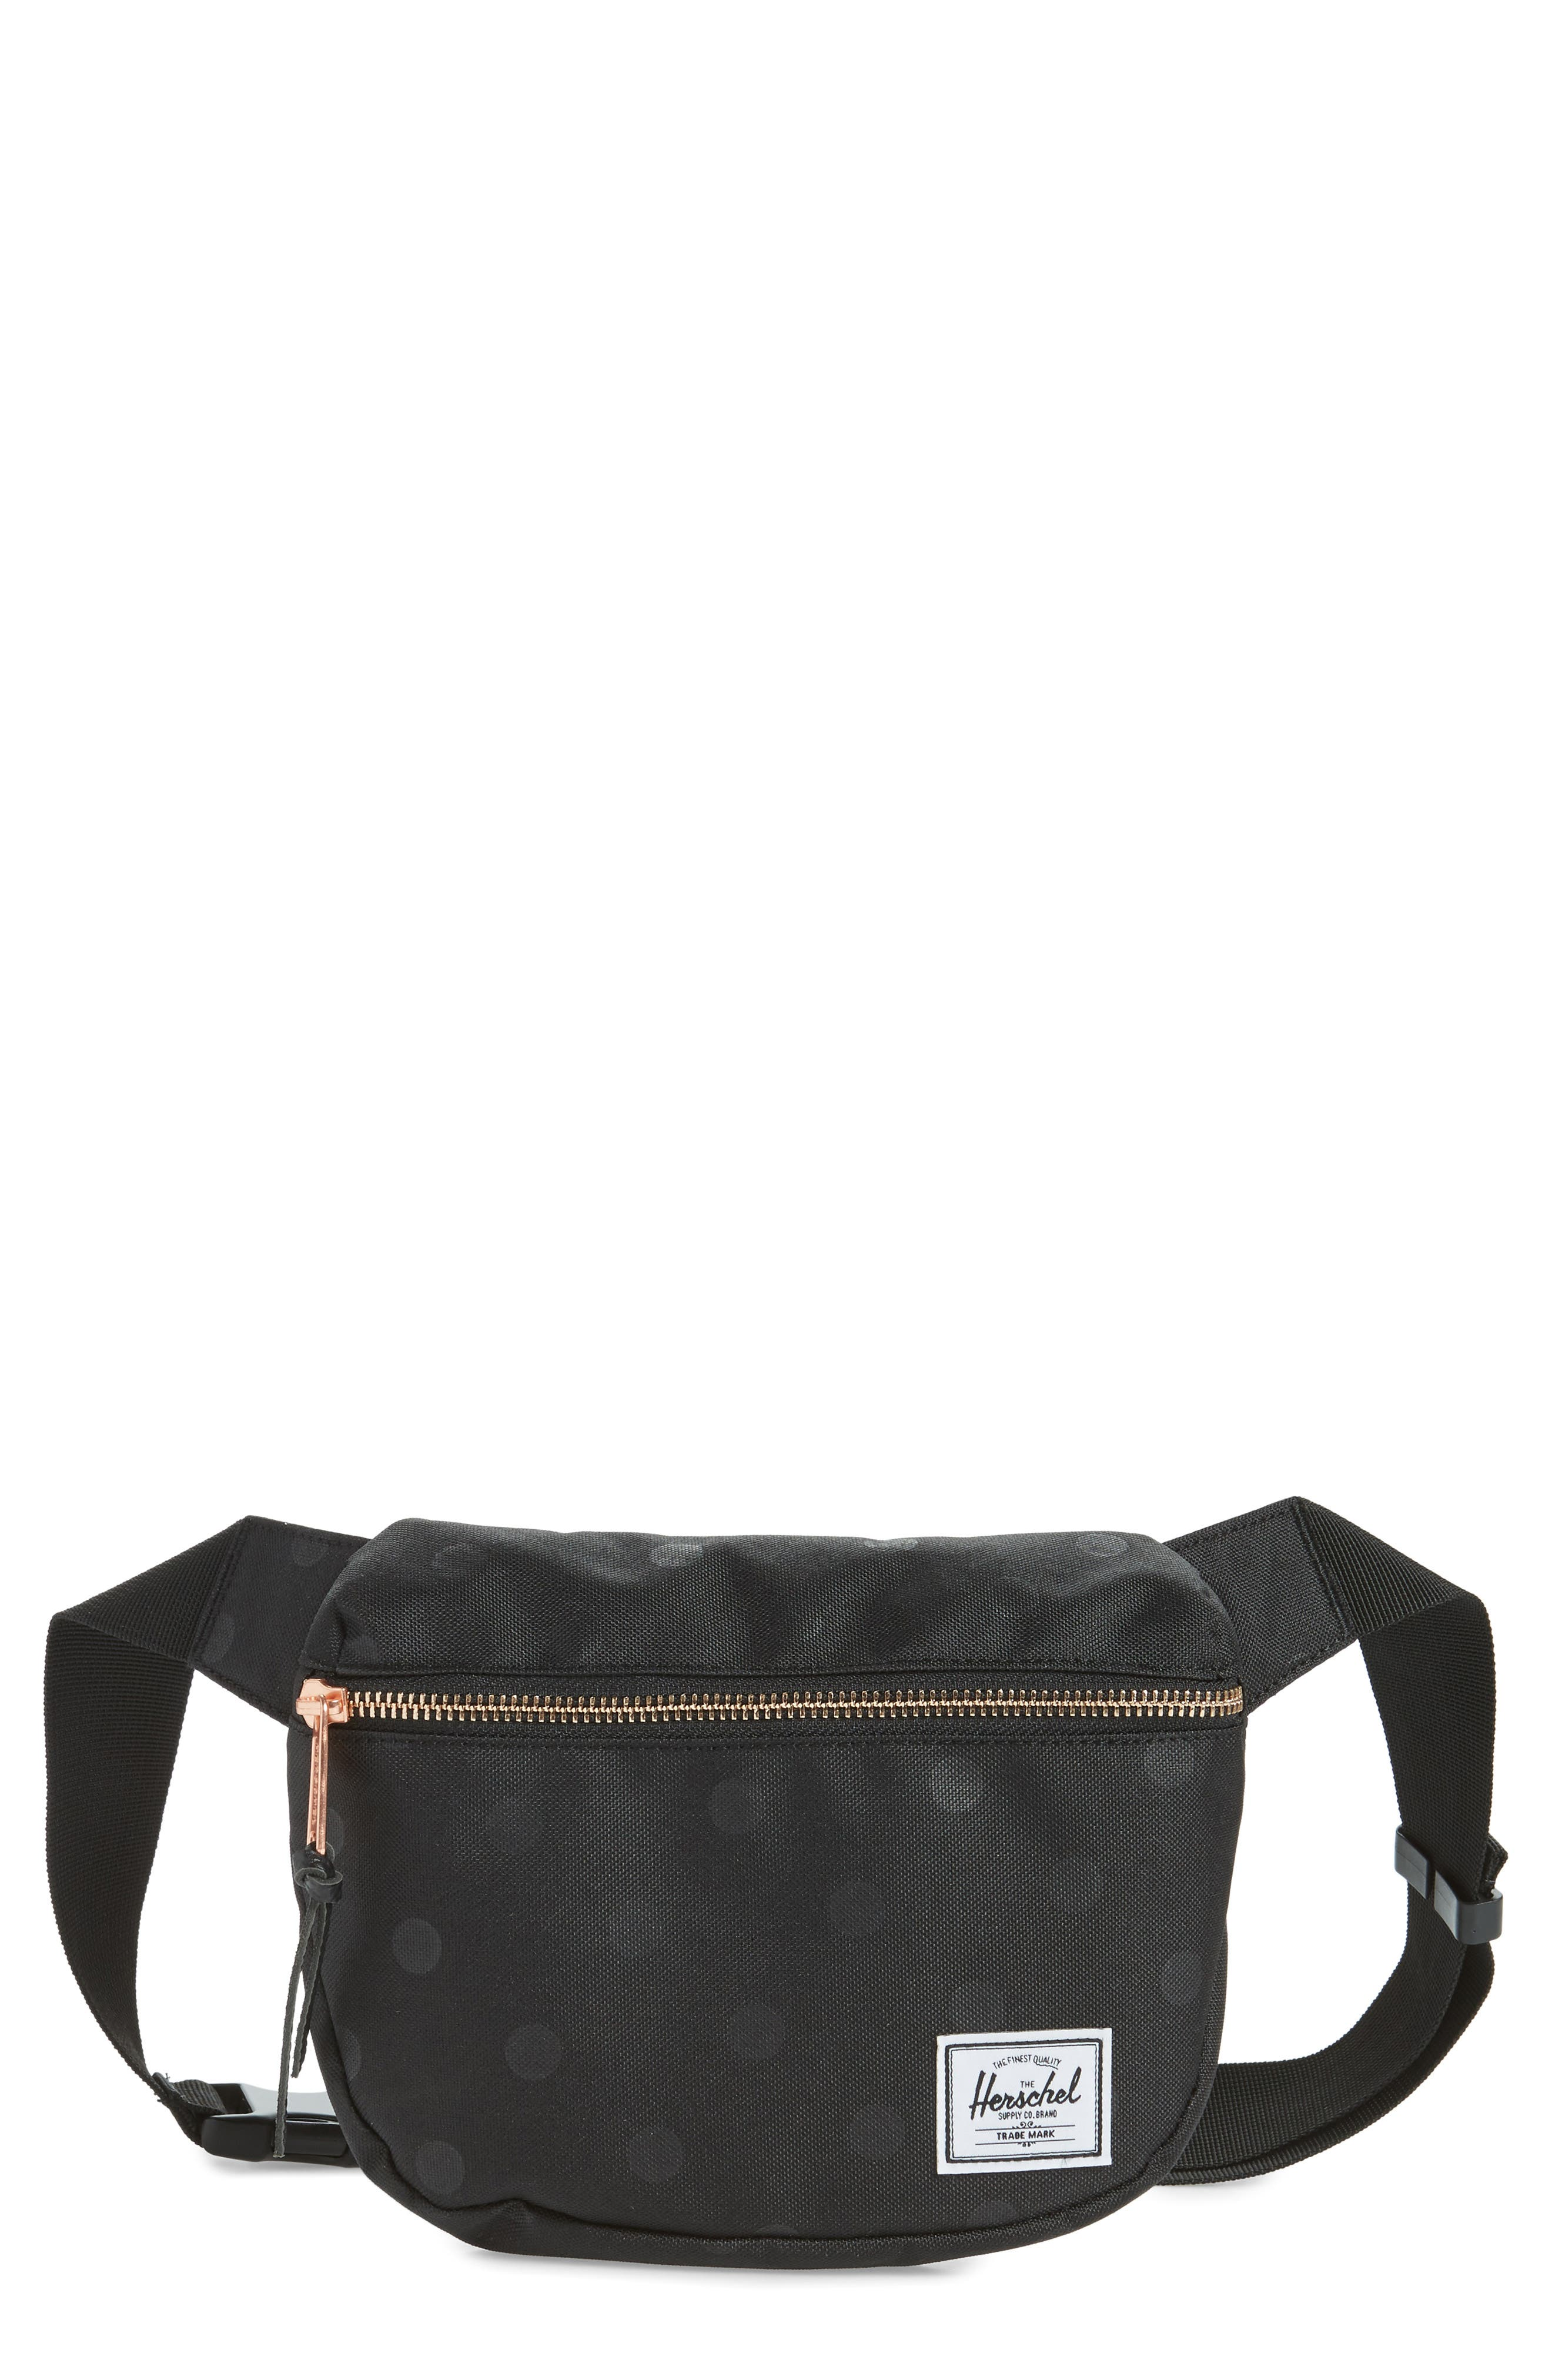 0c6d9d0055ae fanny pack | Nordstrom